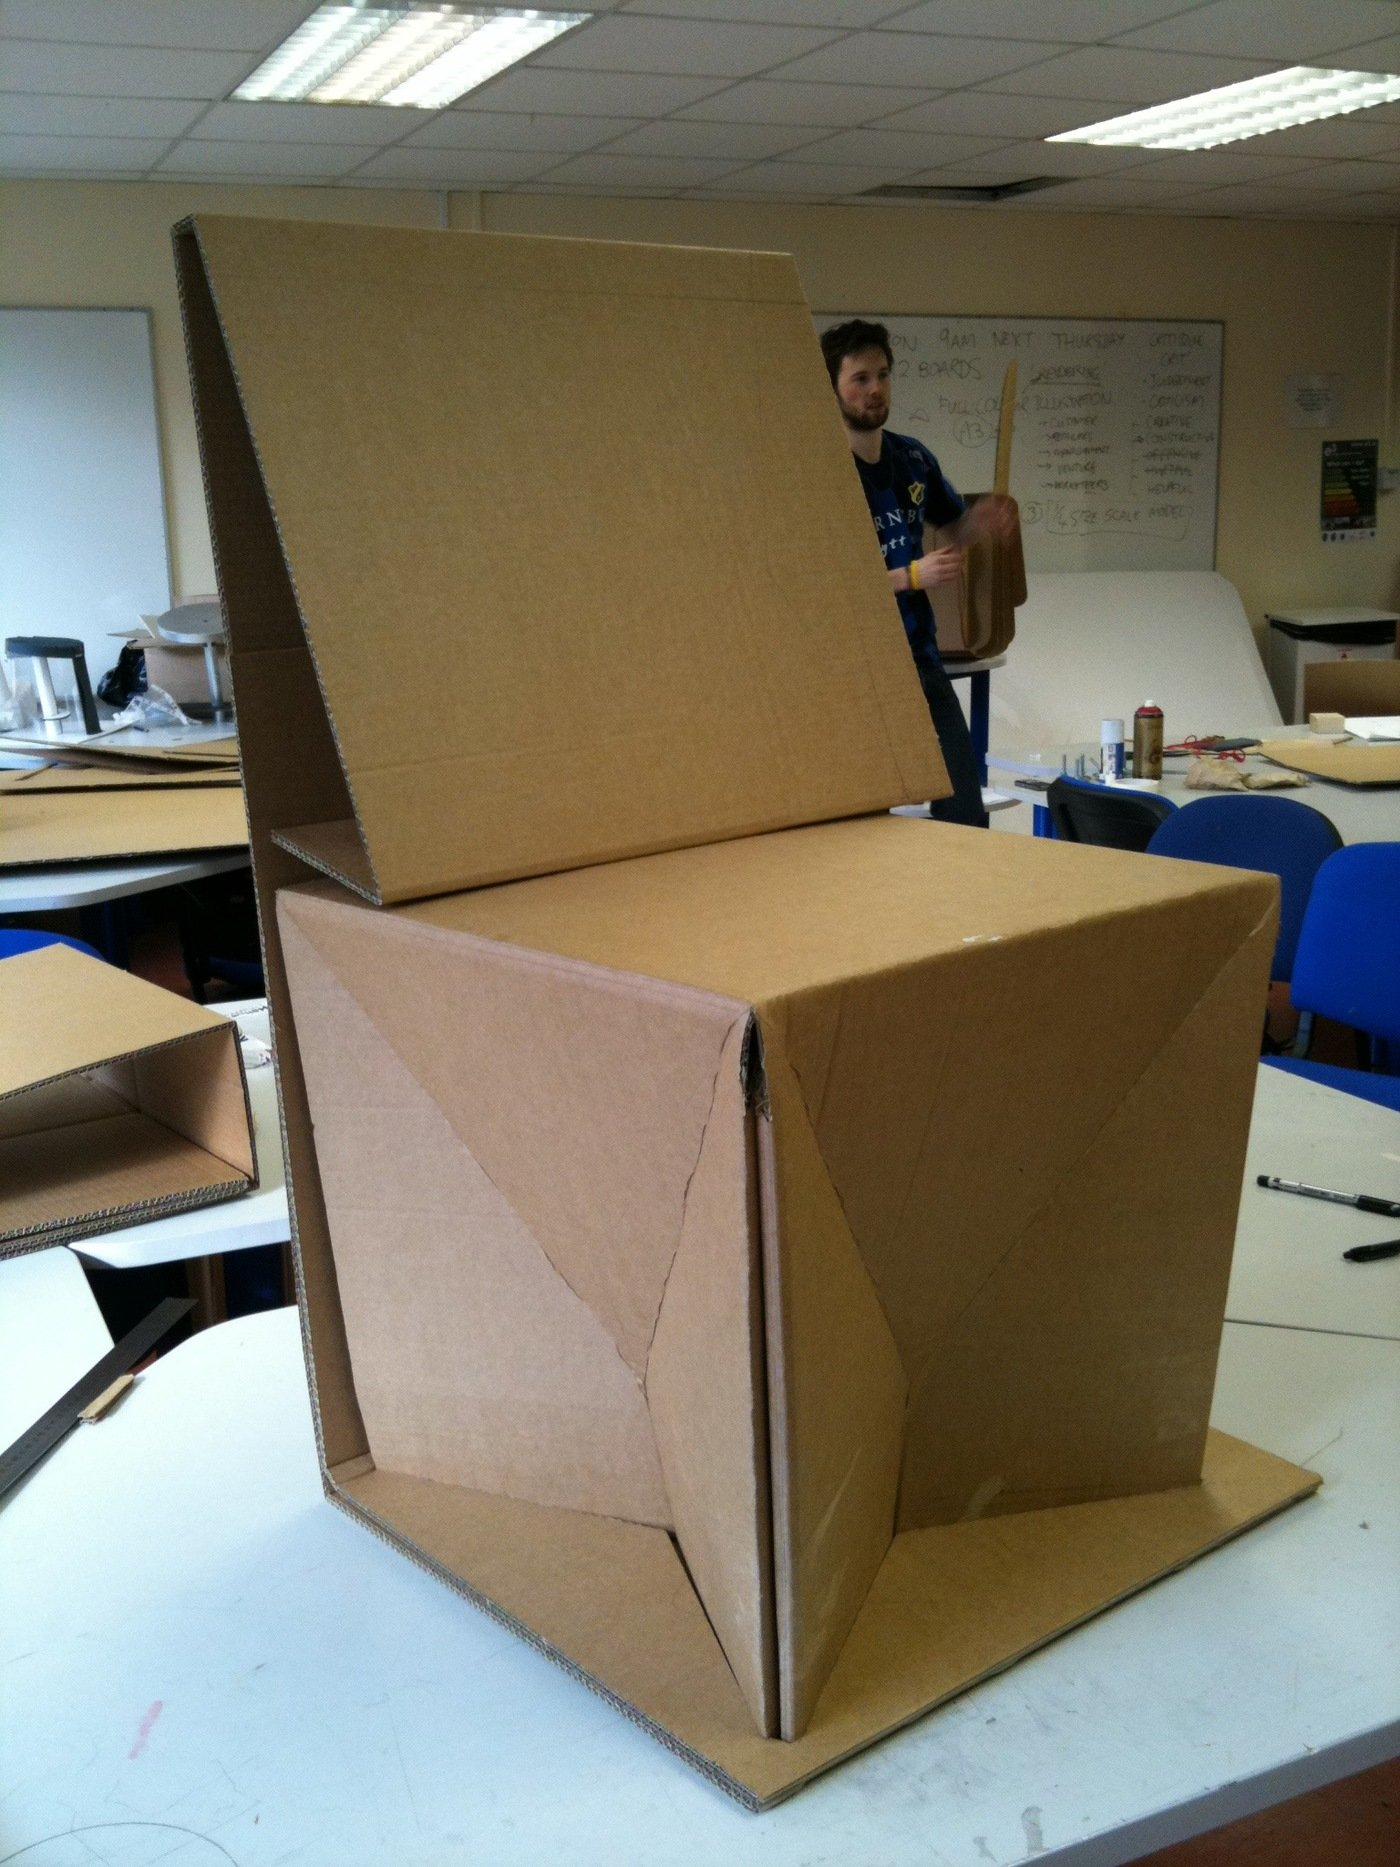 This Was A Project In Which We Were Put Into Groups Of 2 And Had To Design Chair Out Cardboard Using No Glue Or Adhesives Any Other Mechanical